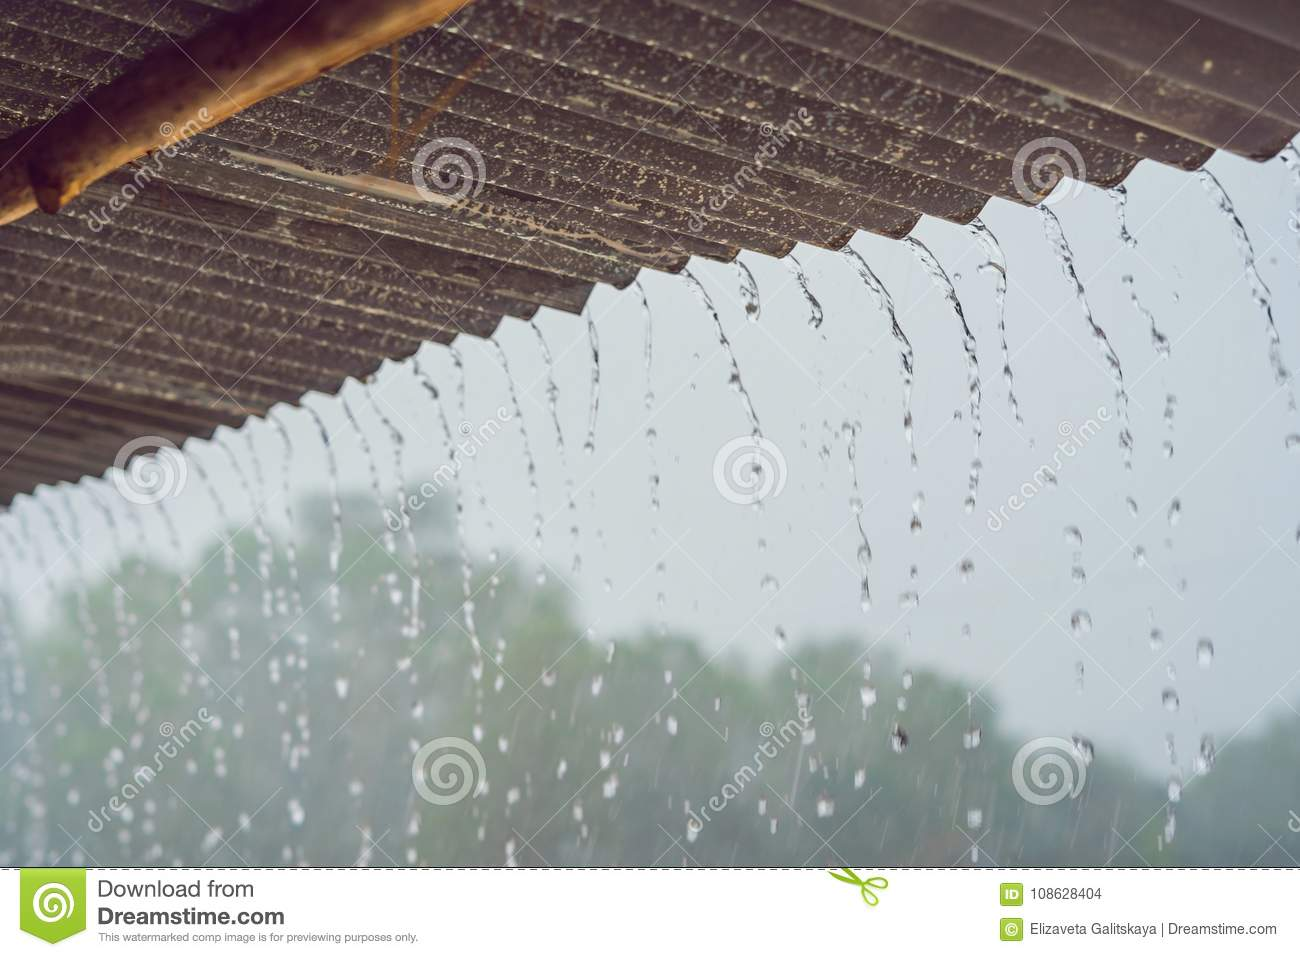 Tropical rain breaks down from the roof